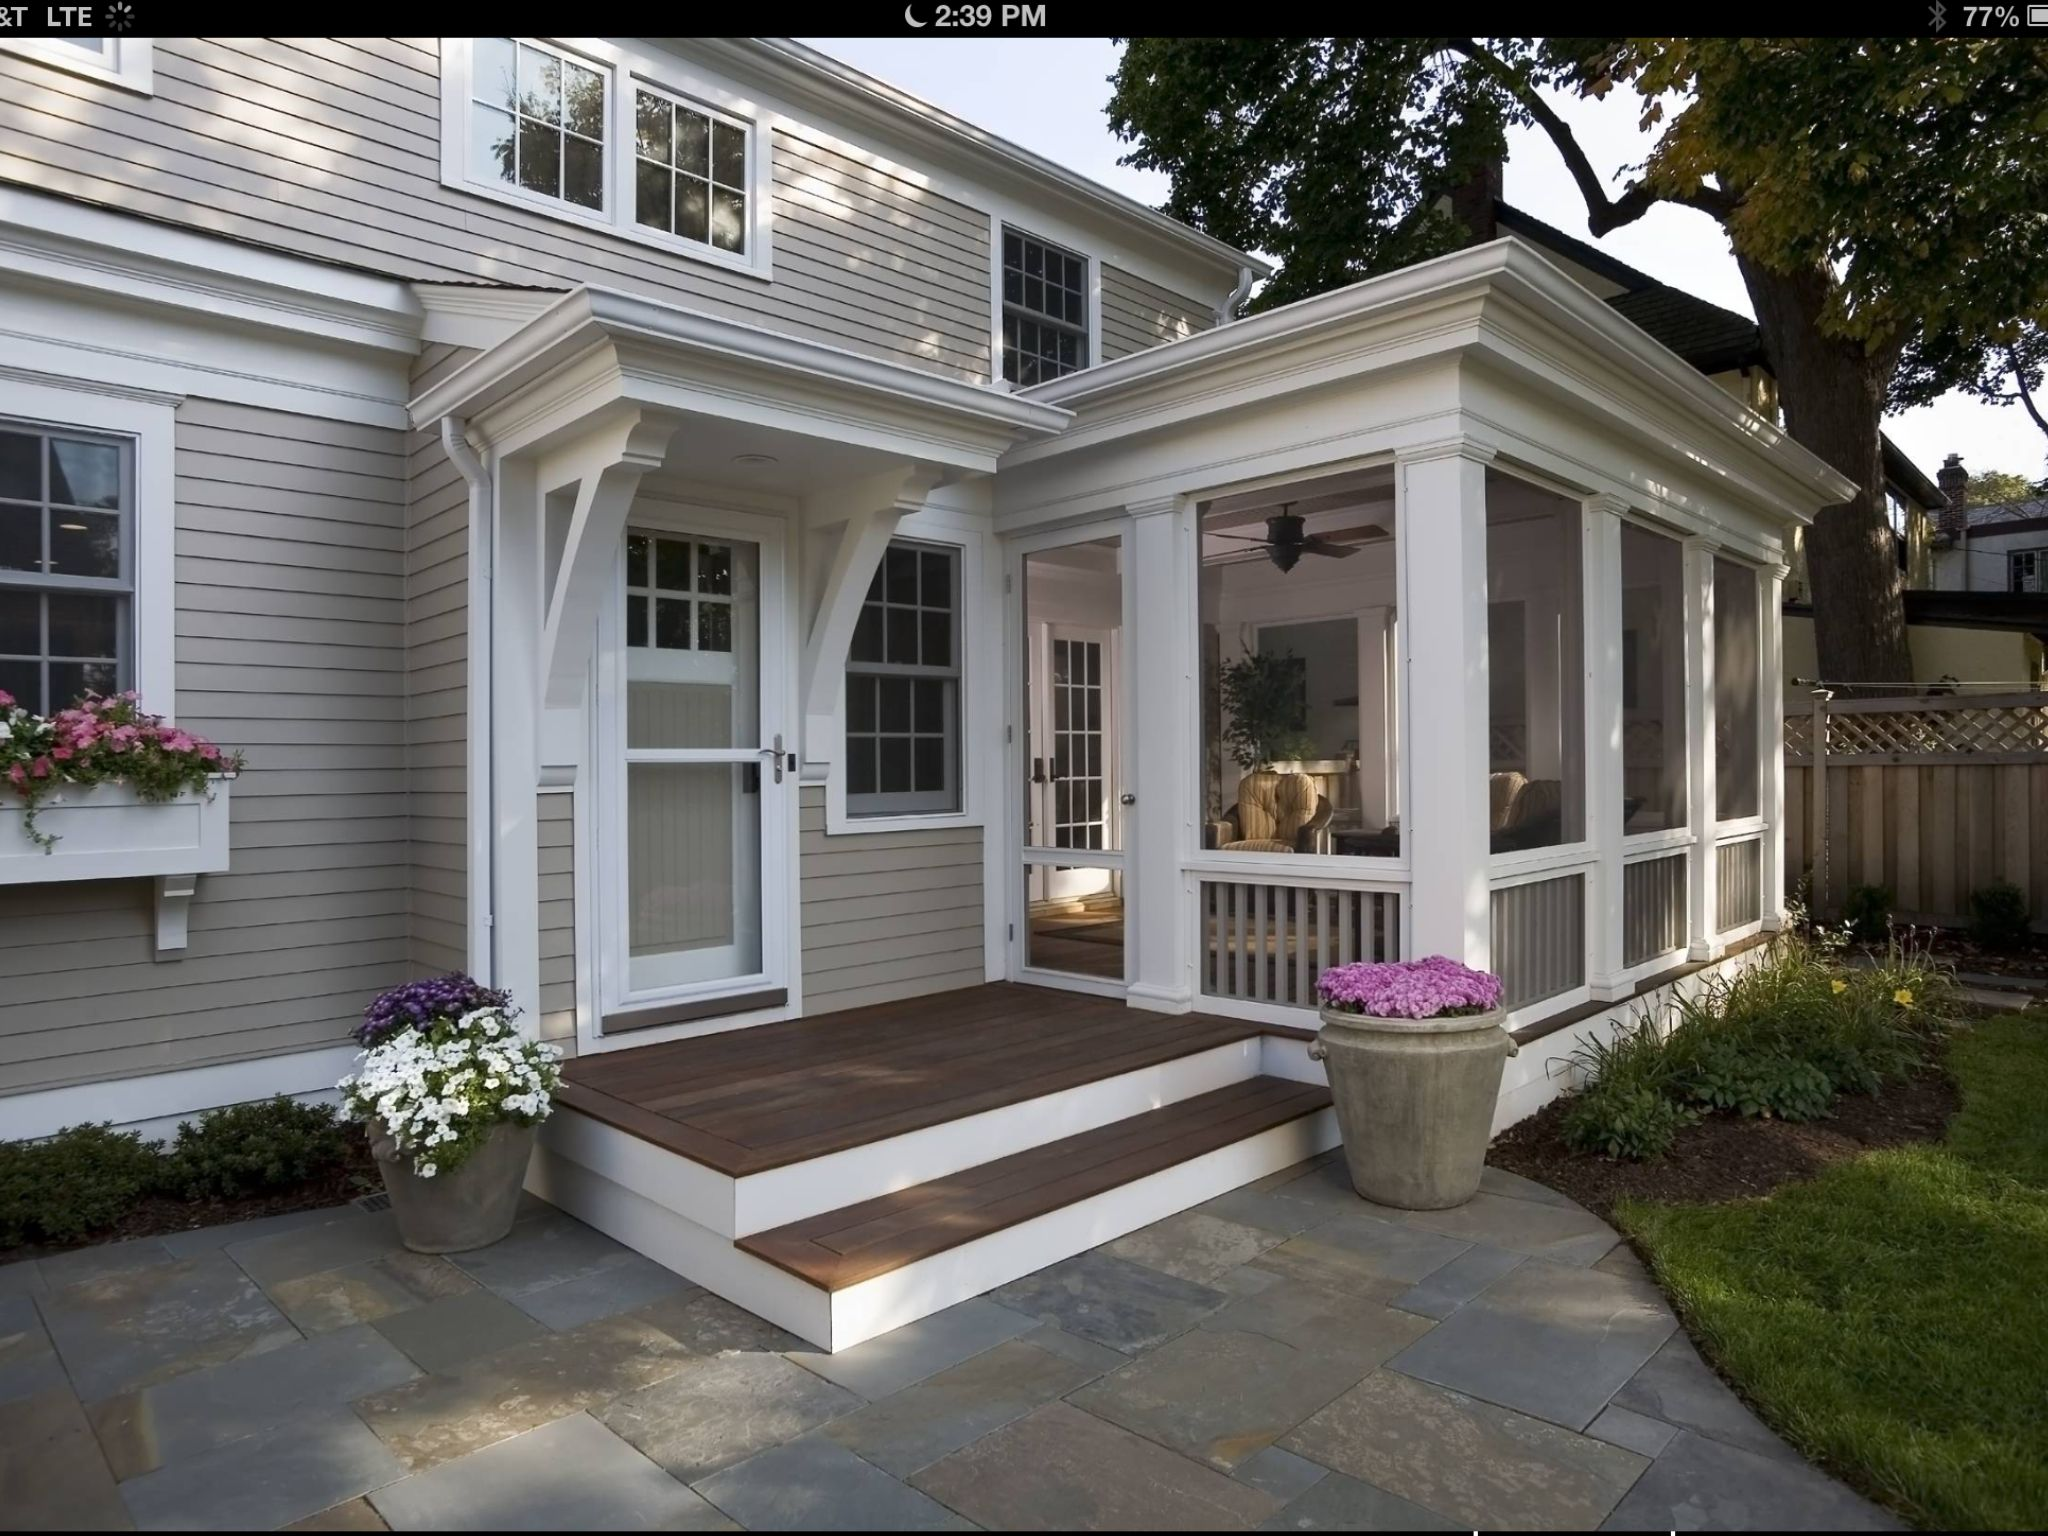 I will have a lovely 3 season porch on the next house